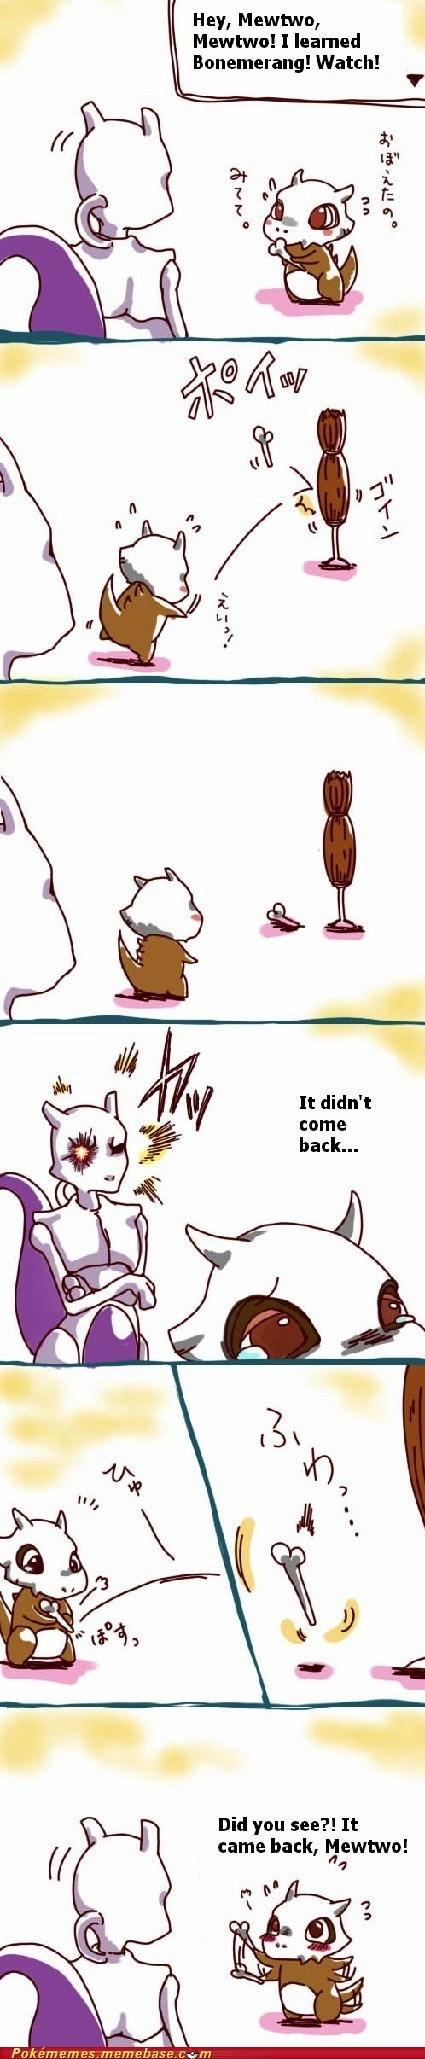 Good Guy Mewtwo